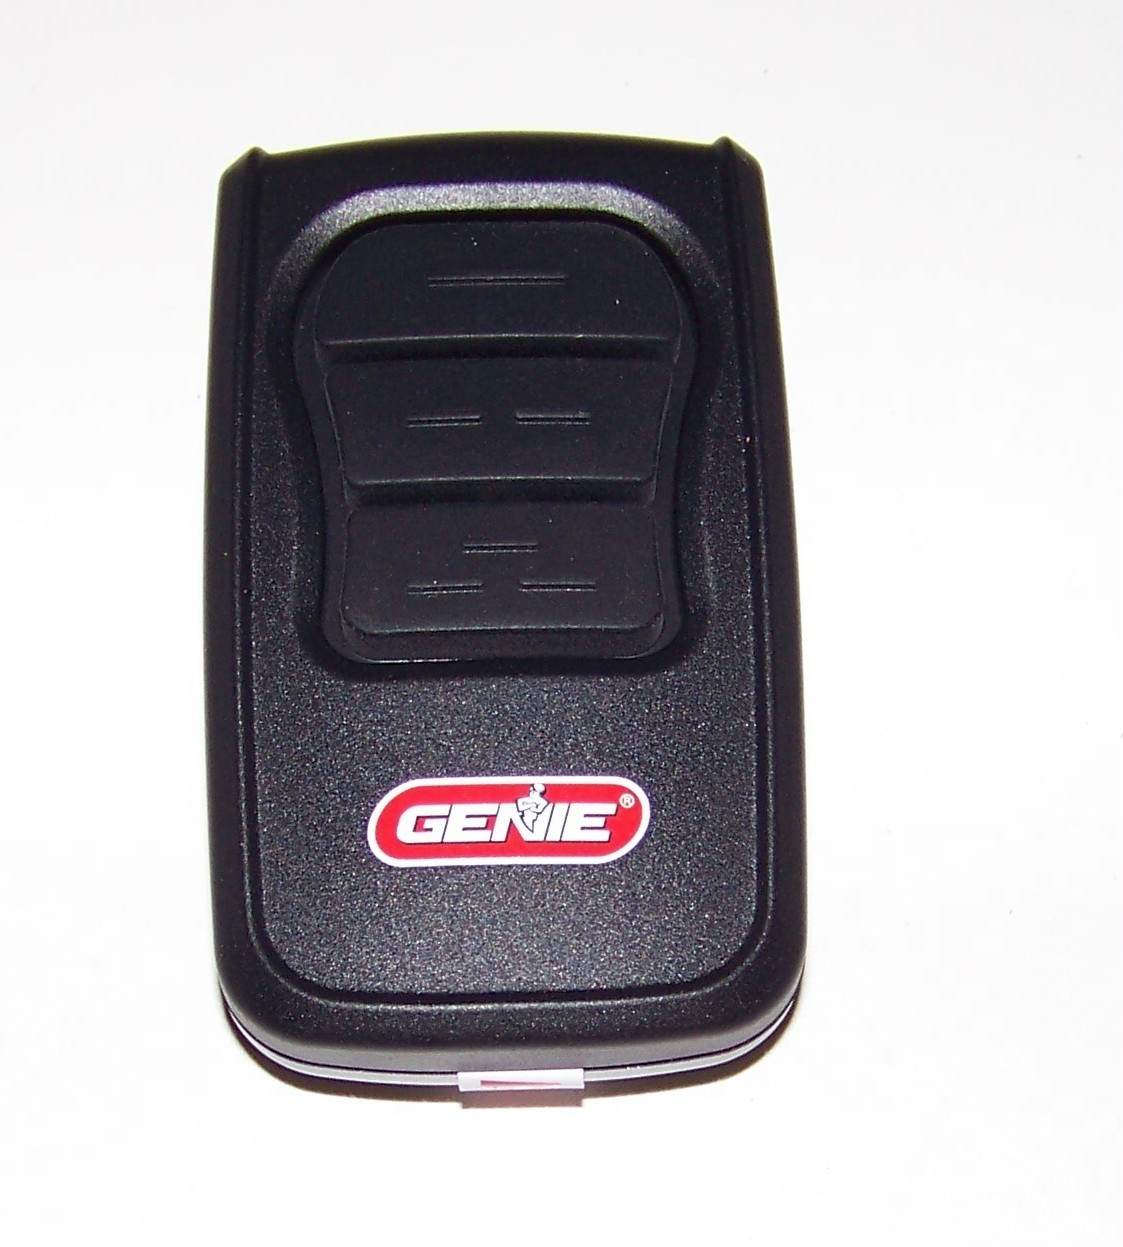 Genie Garage Door Opener Remote Gm3t Bx